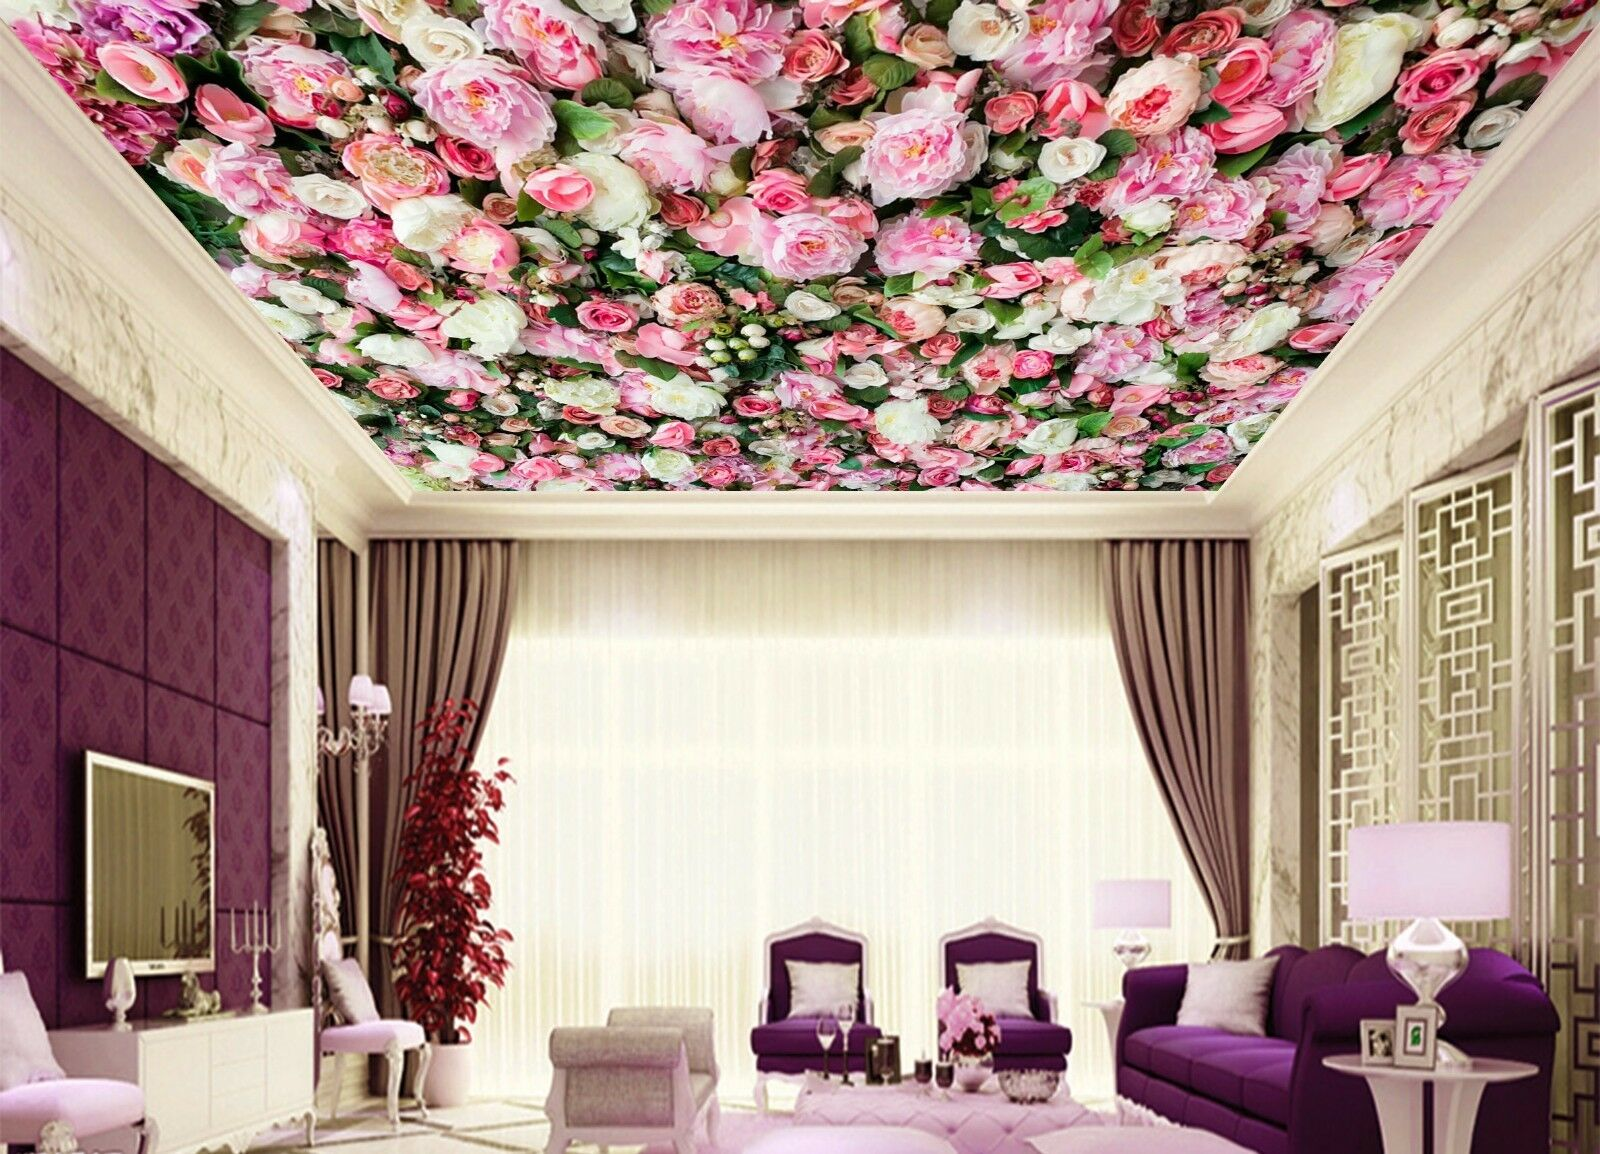 3D Peony Flower 732 Ceiling WallPaper Murals Wall Print Decal Deco AJ WALLPAPER